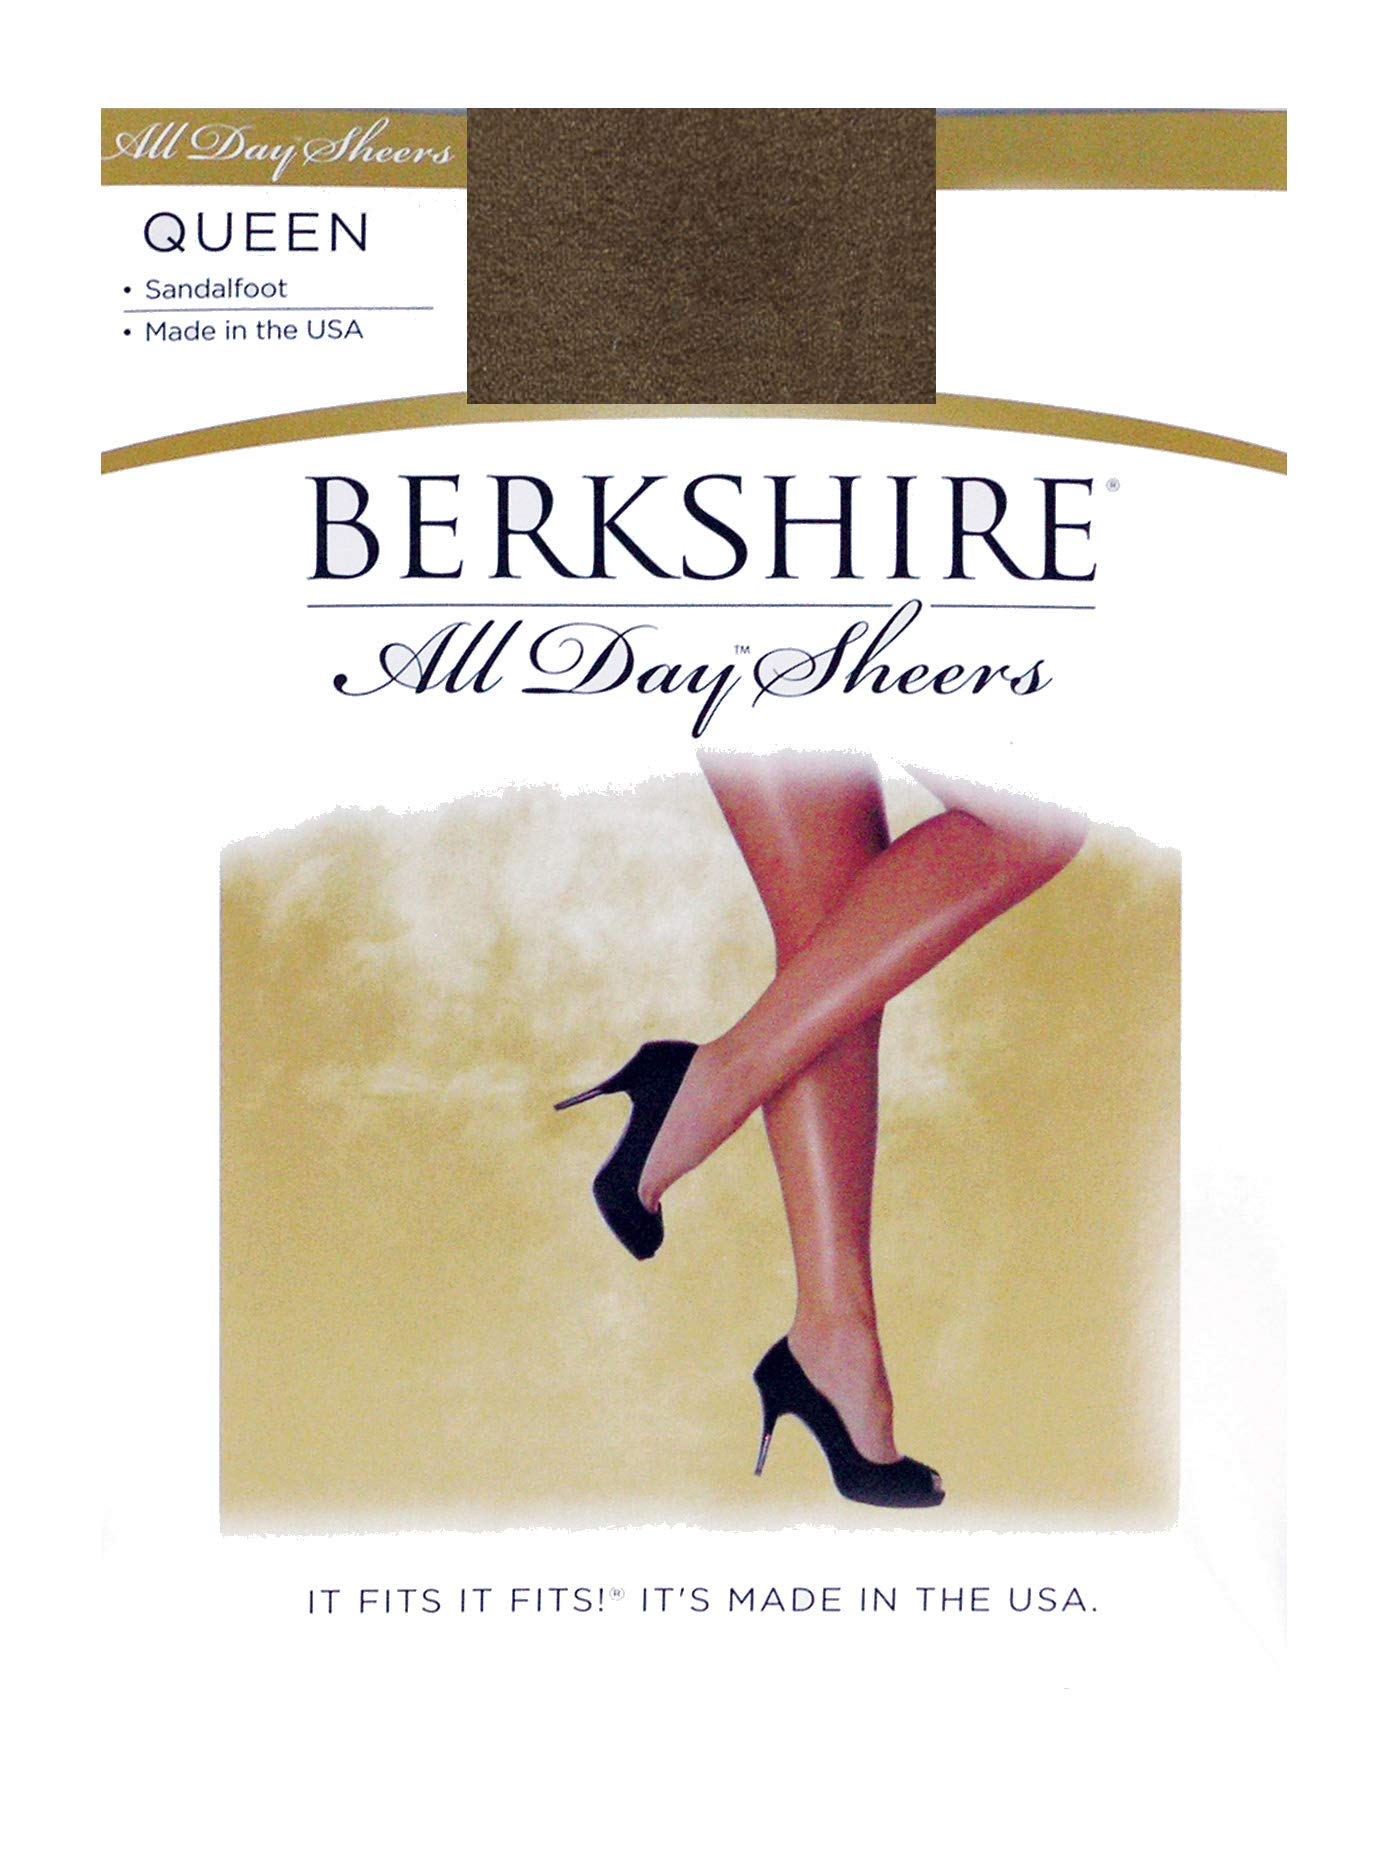 ffa08c2d8 Berkshire Women s Plus-Size Queen All Day Sheer Non-Control Top Pantyhose -  Sandalfoot